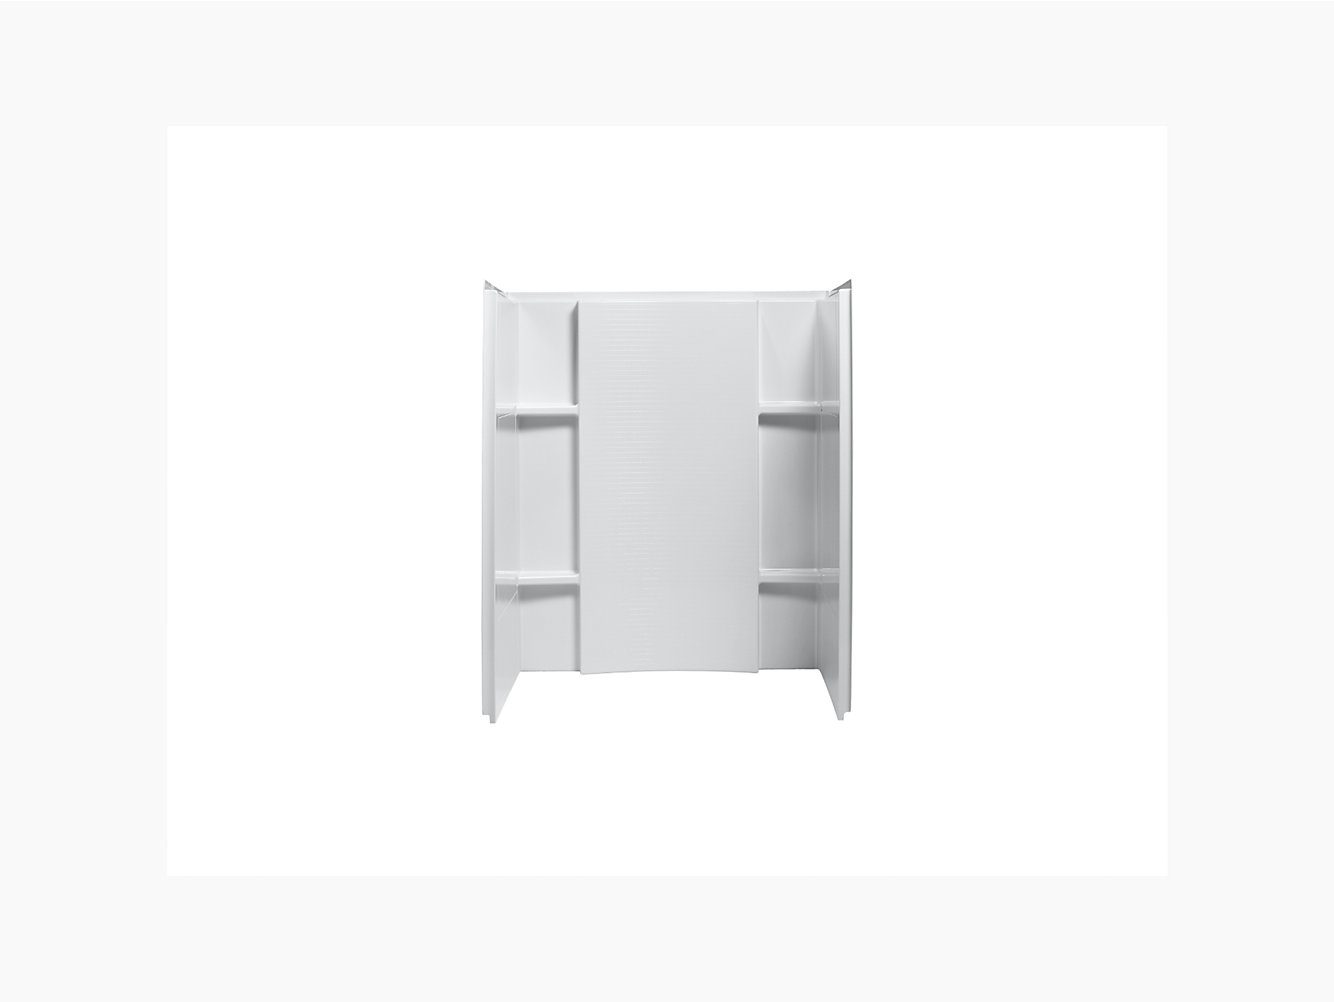 Accord 48 X 36 Shower Wall Set With Aging In Place Backerboards 72284106 Sterling